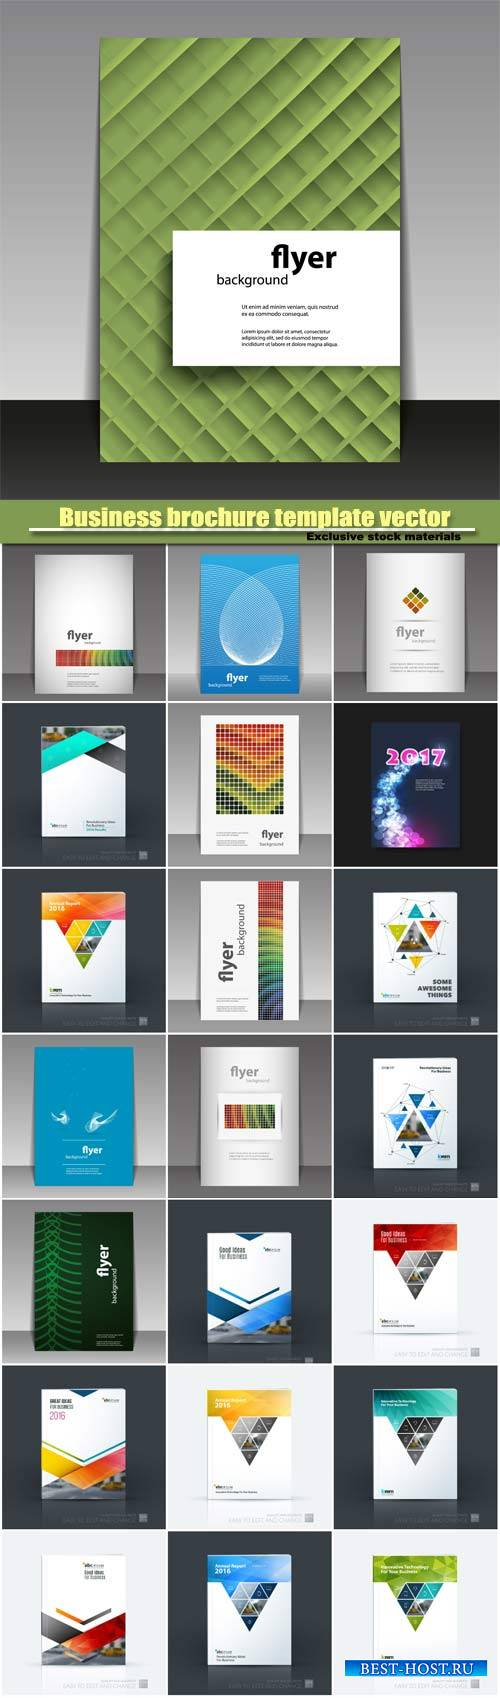 Business brochure template vector design, abstract creative design